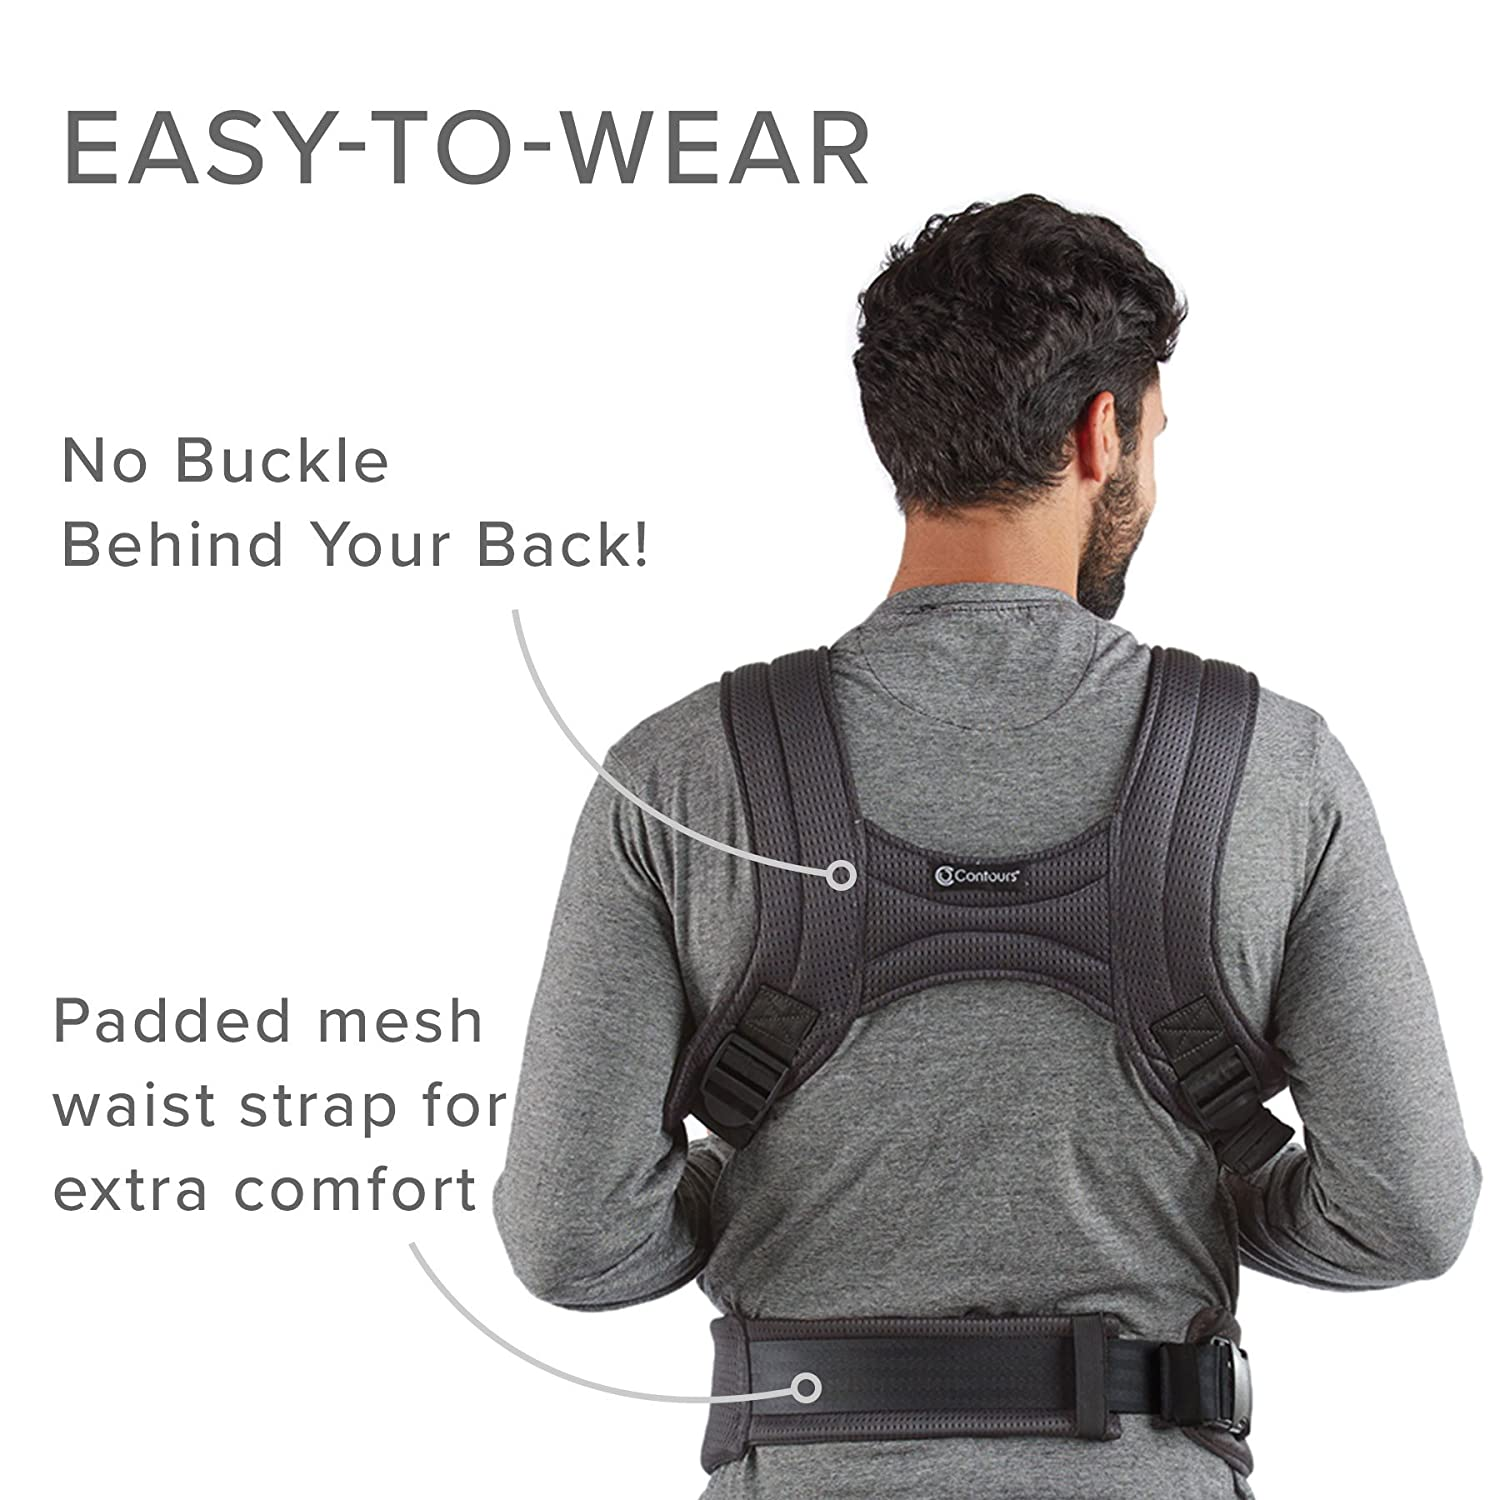 Contours Love 3-in-1 Child Baby Carrier with 3 Seating Positions, Black